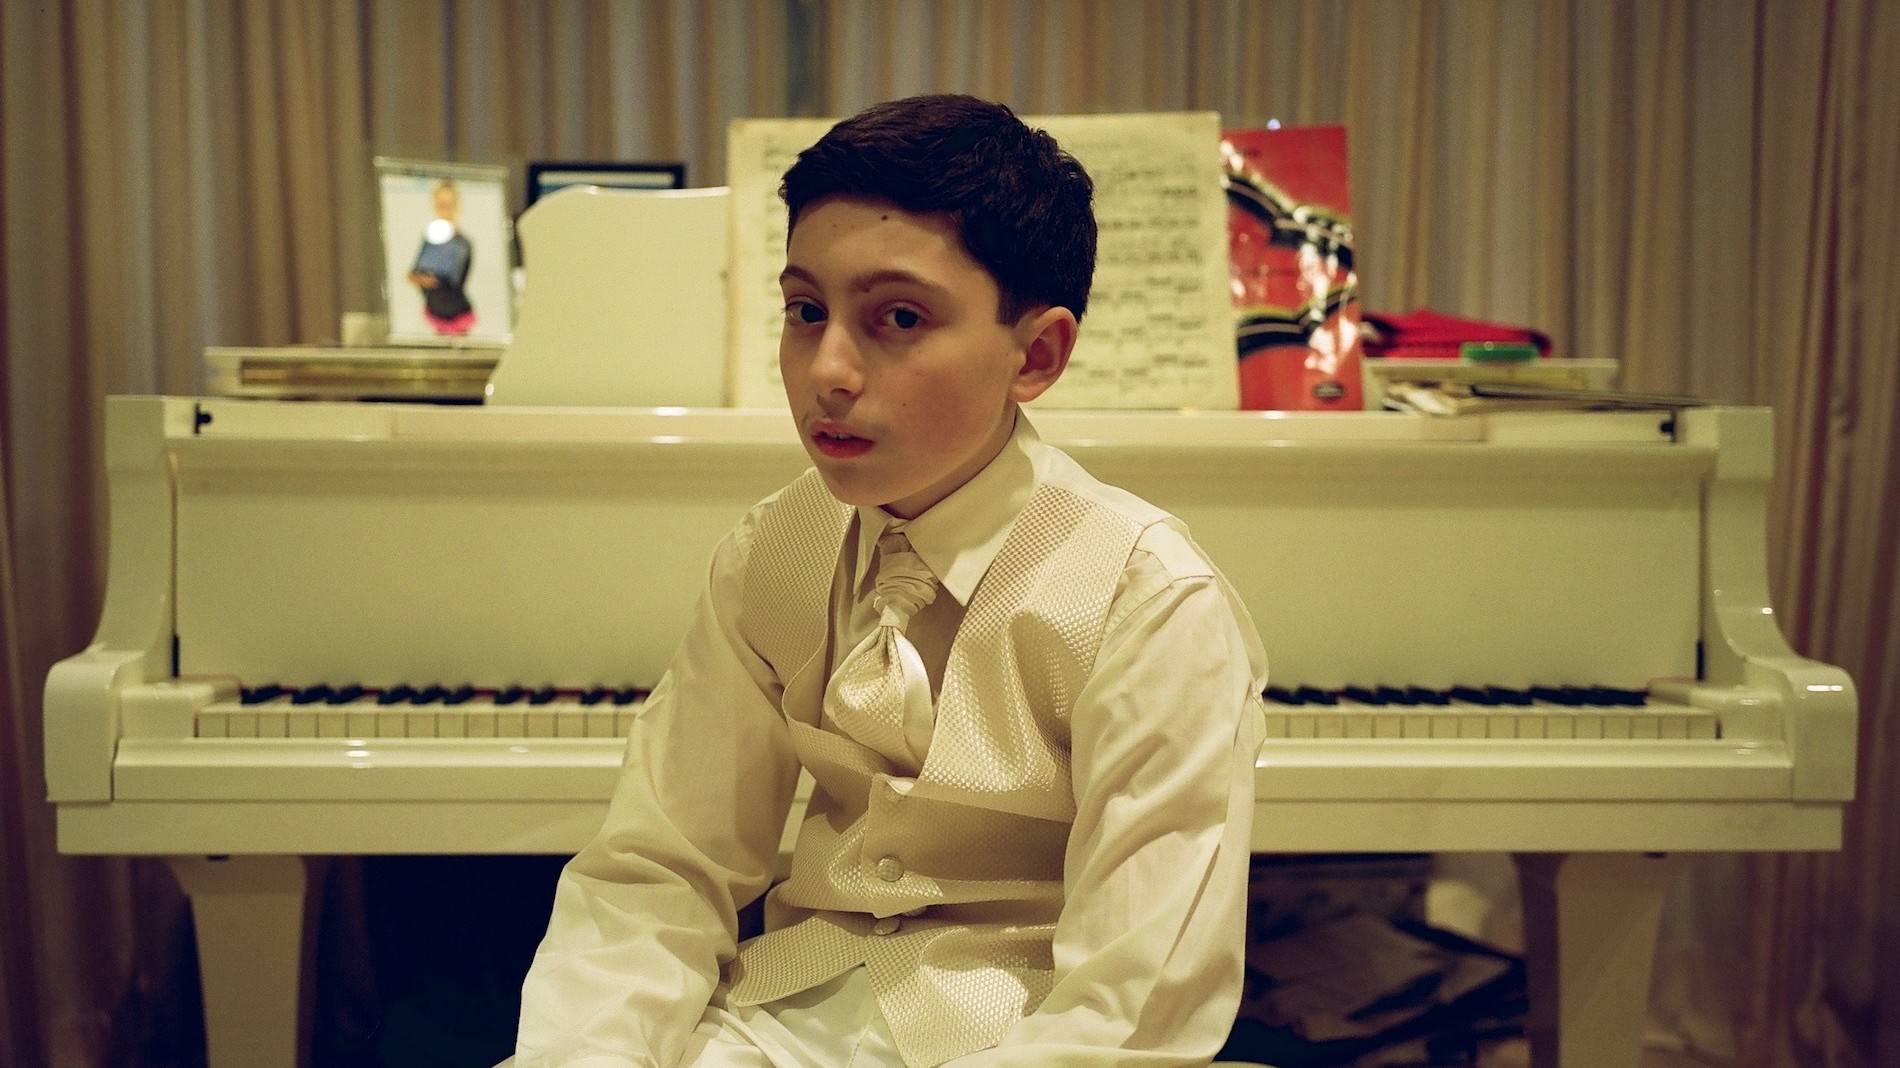 'I Never Give Up': Inside the Life of a Child Prodigy